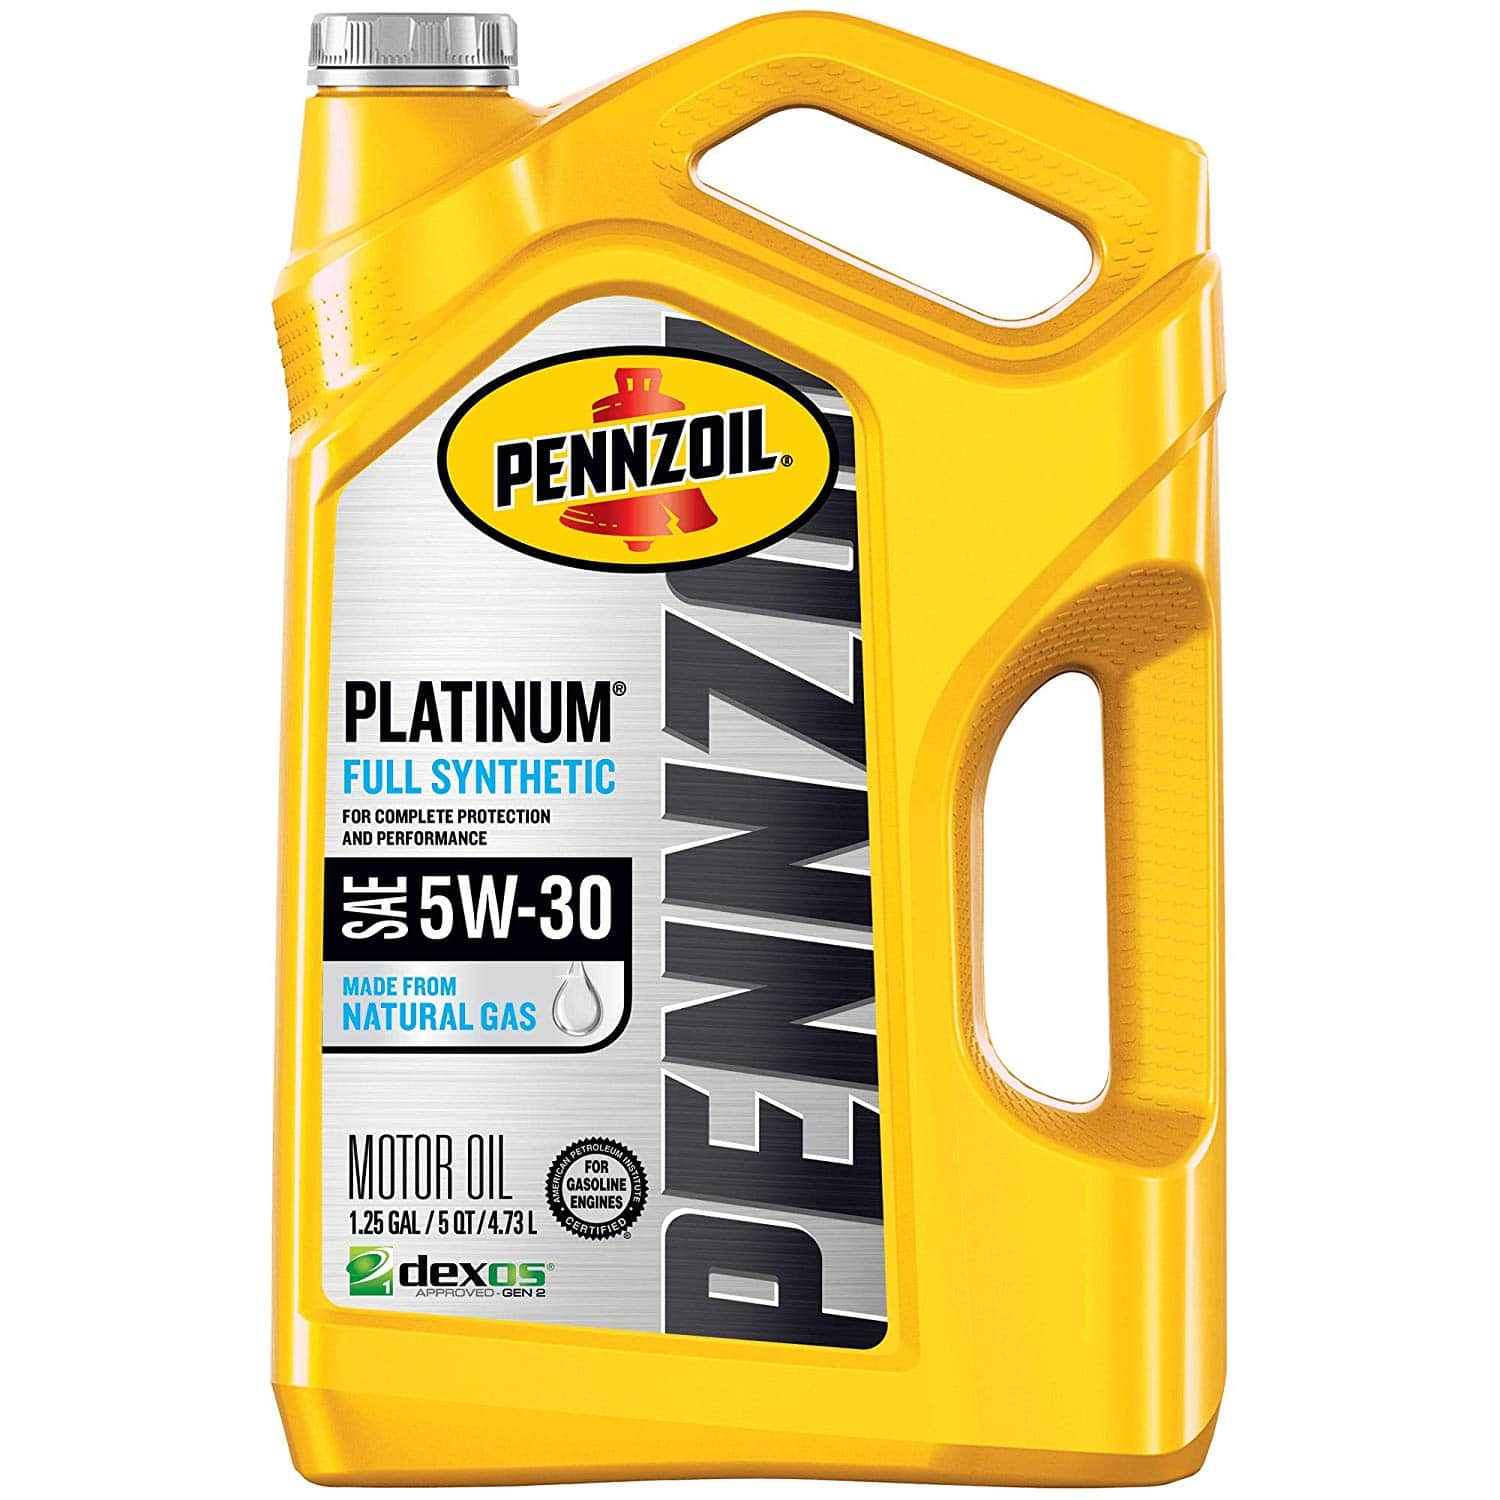 5-Quart Pennzoil Platinum 5W-30 Full Synthetic Motor Oil